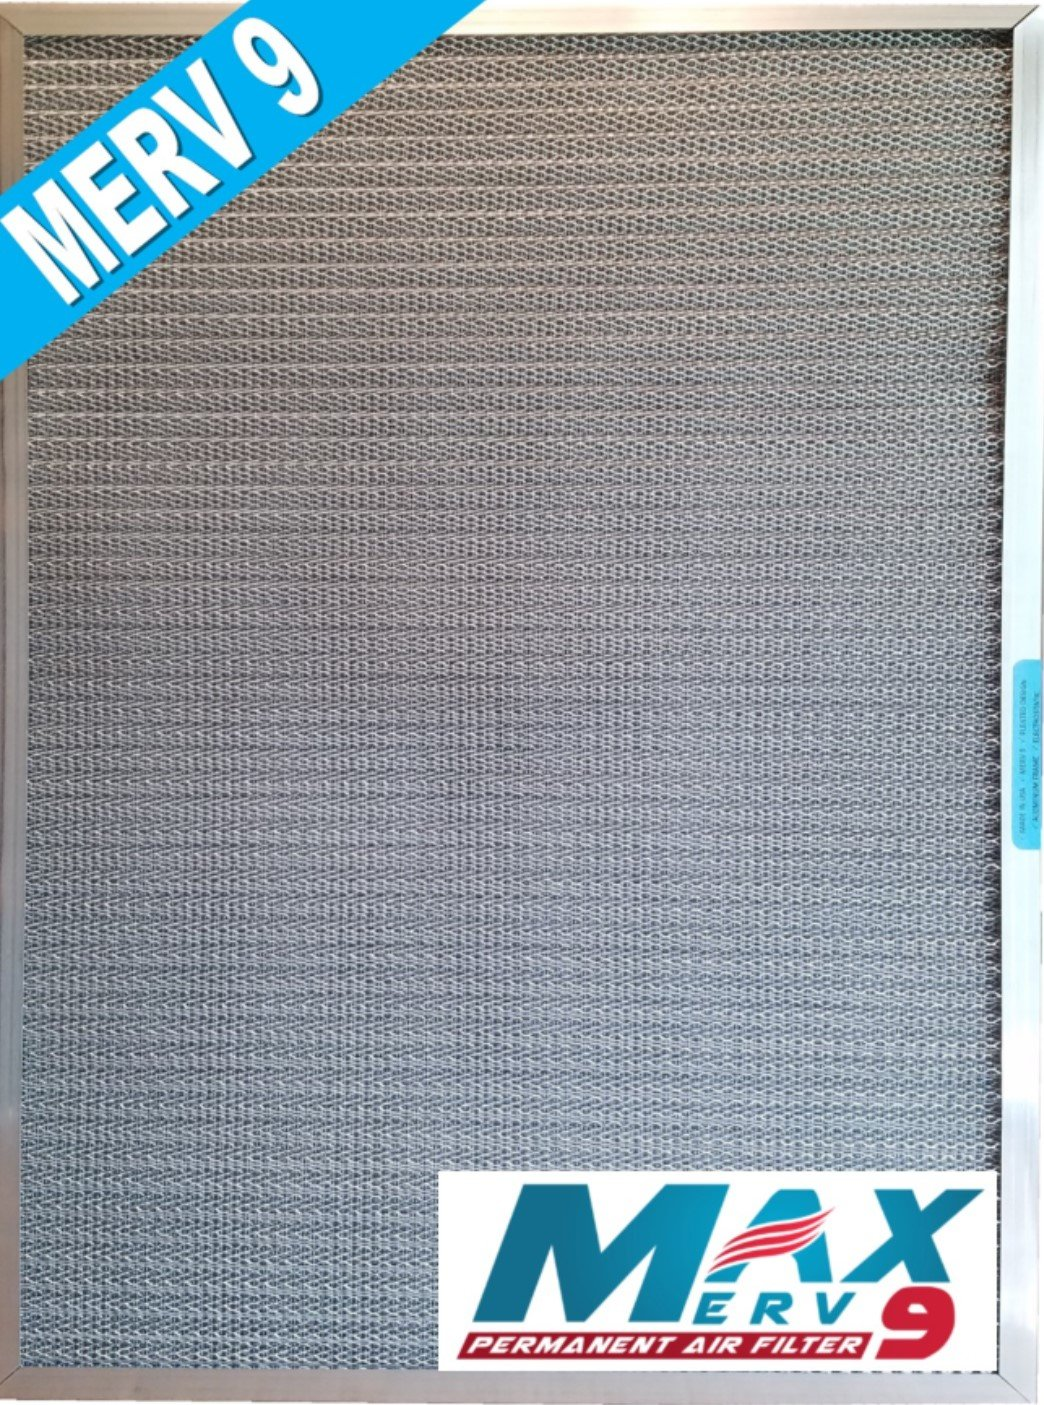 5-Stage CERTIFIED MERV RATED Electrostatic Washable Permanent Furnace A/C Air Filter – The highest MERV rating of any lifetime filter - Traps particles including MOLD POLLEN SMOKE PET DANDER (16x25x1)